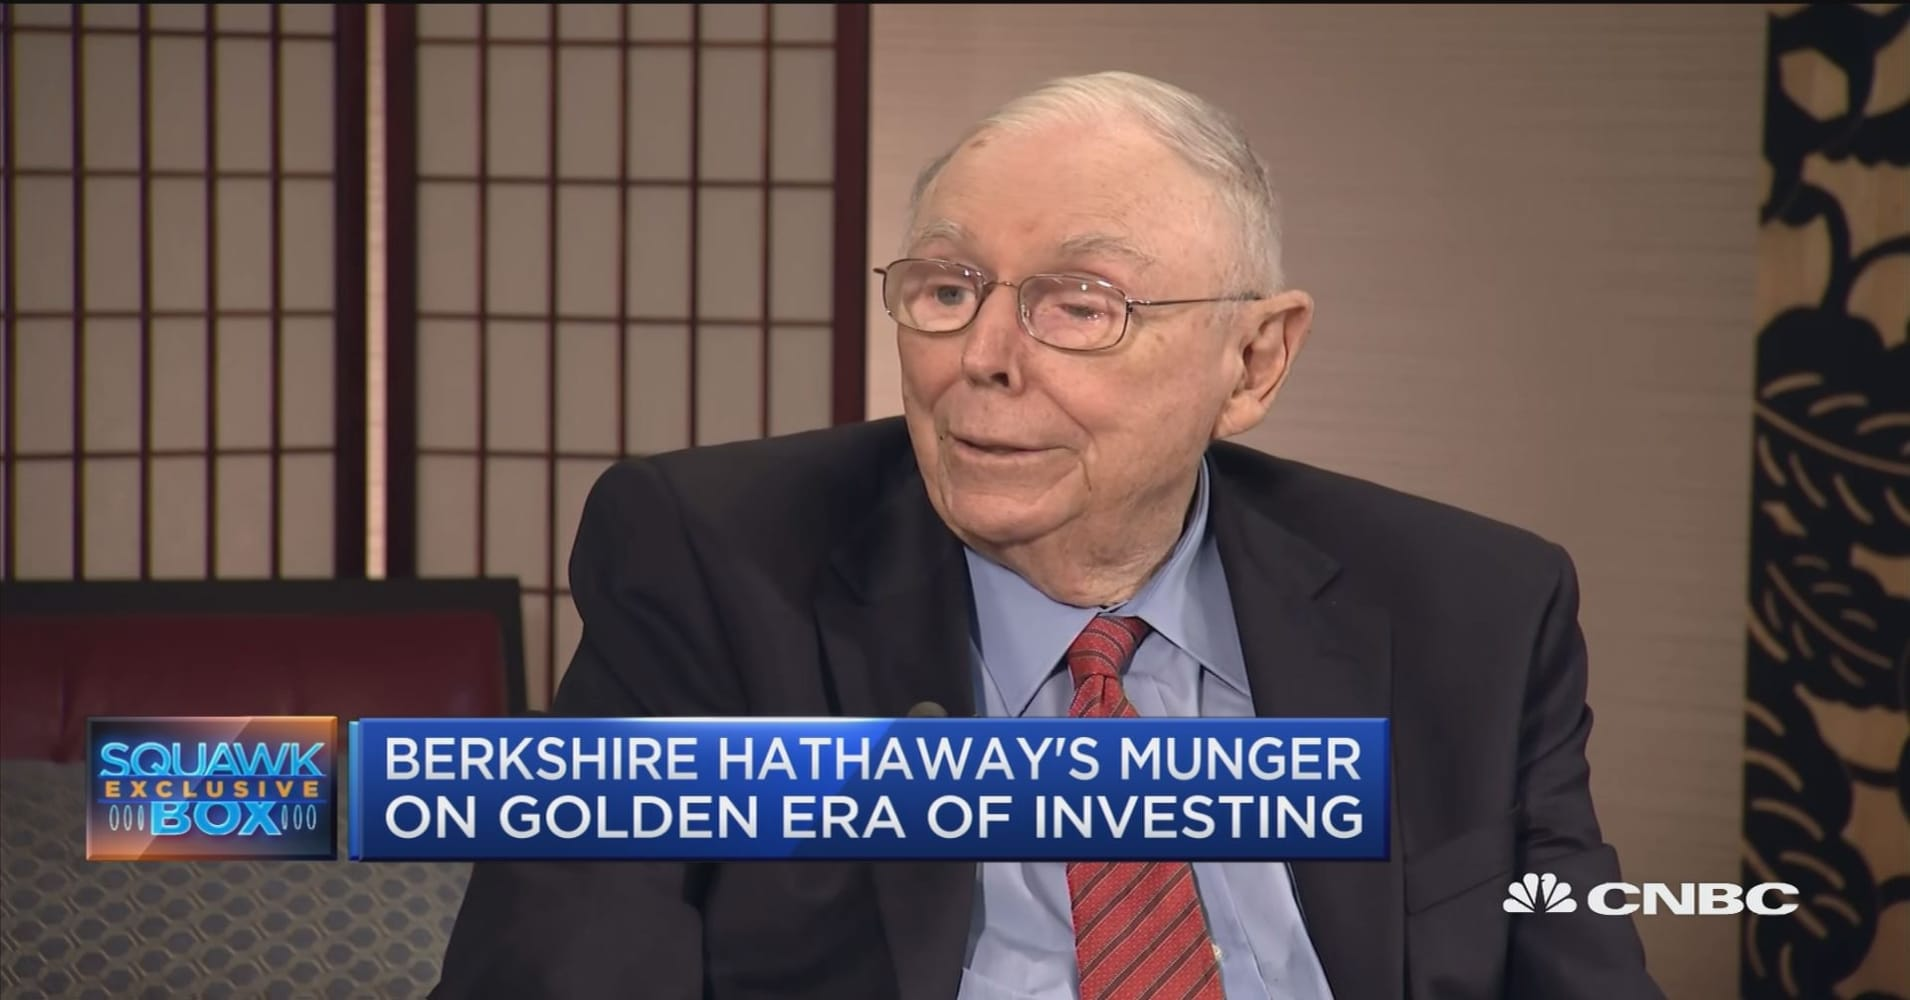 Here's why the legendary Charlie Munger thinks investing is harder than it used to be